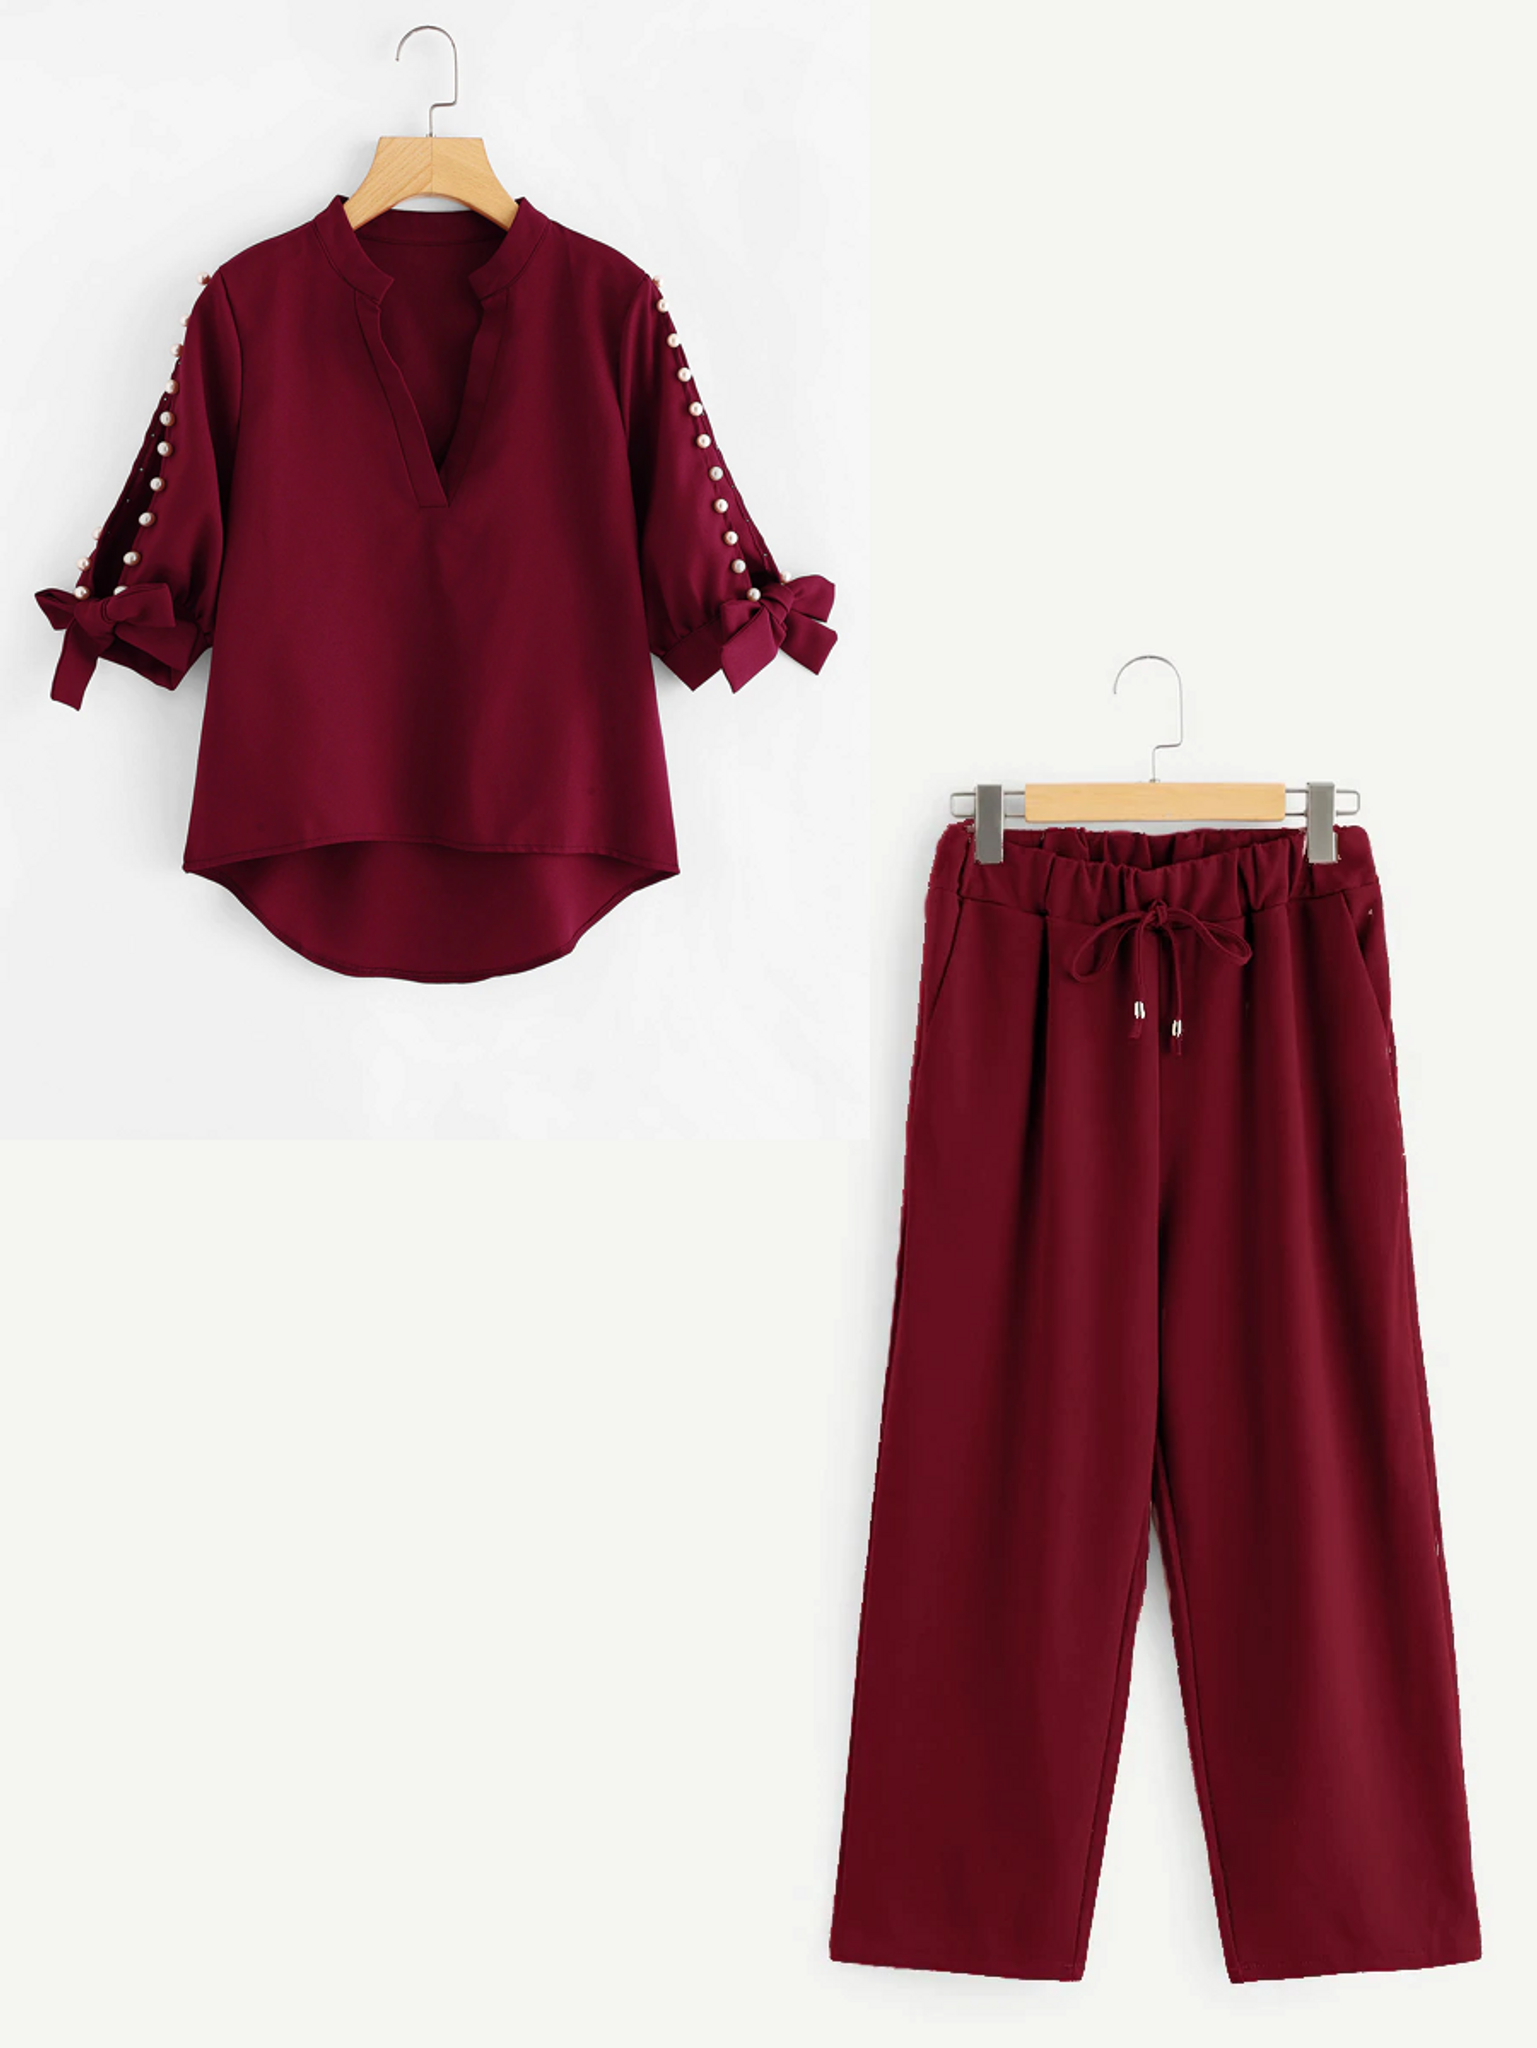 Fifth Avenue Beaded Sleeve Tie Top and Culotte Pants 2 Piece Set TPS33 - Maroon